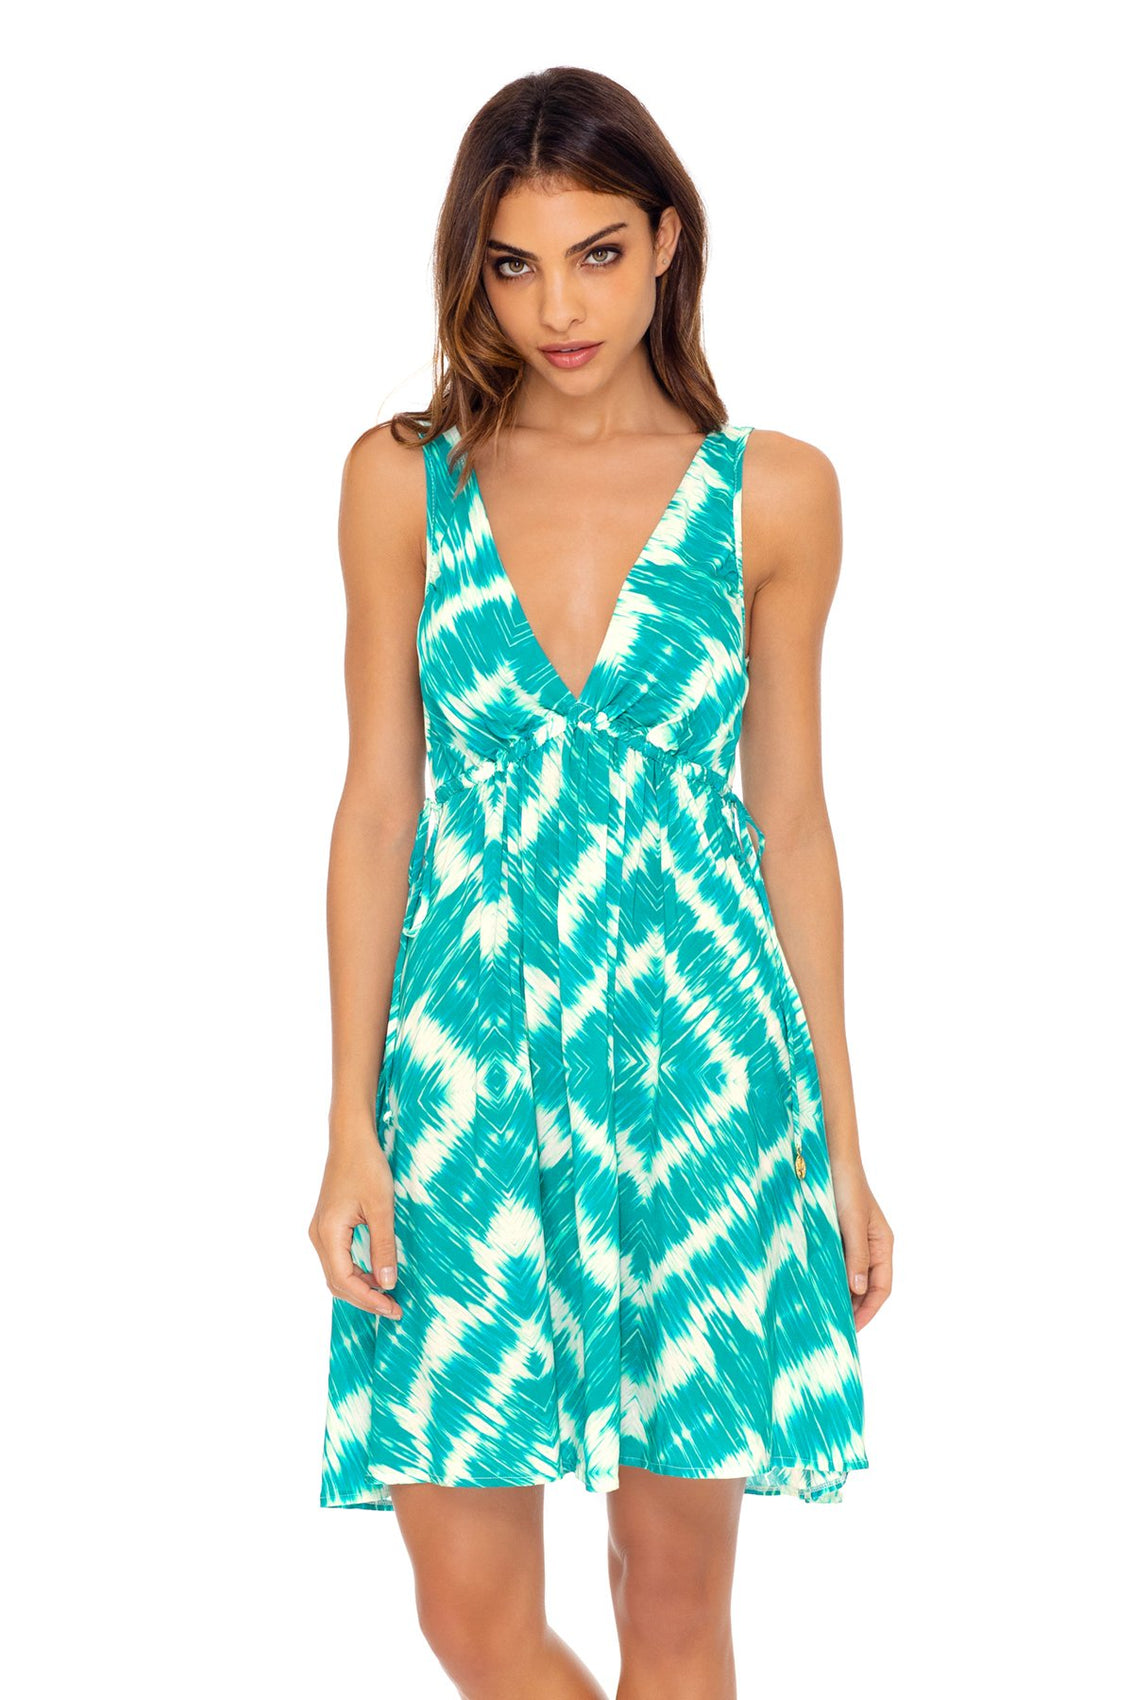 MERMAID WISHES - V Neck Short Dress • Multicolor